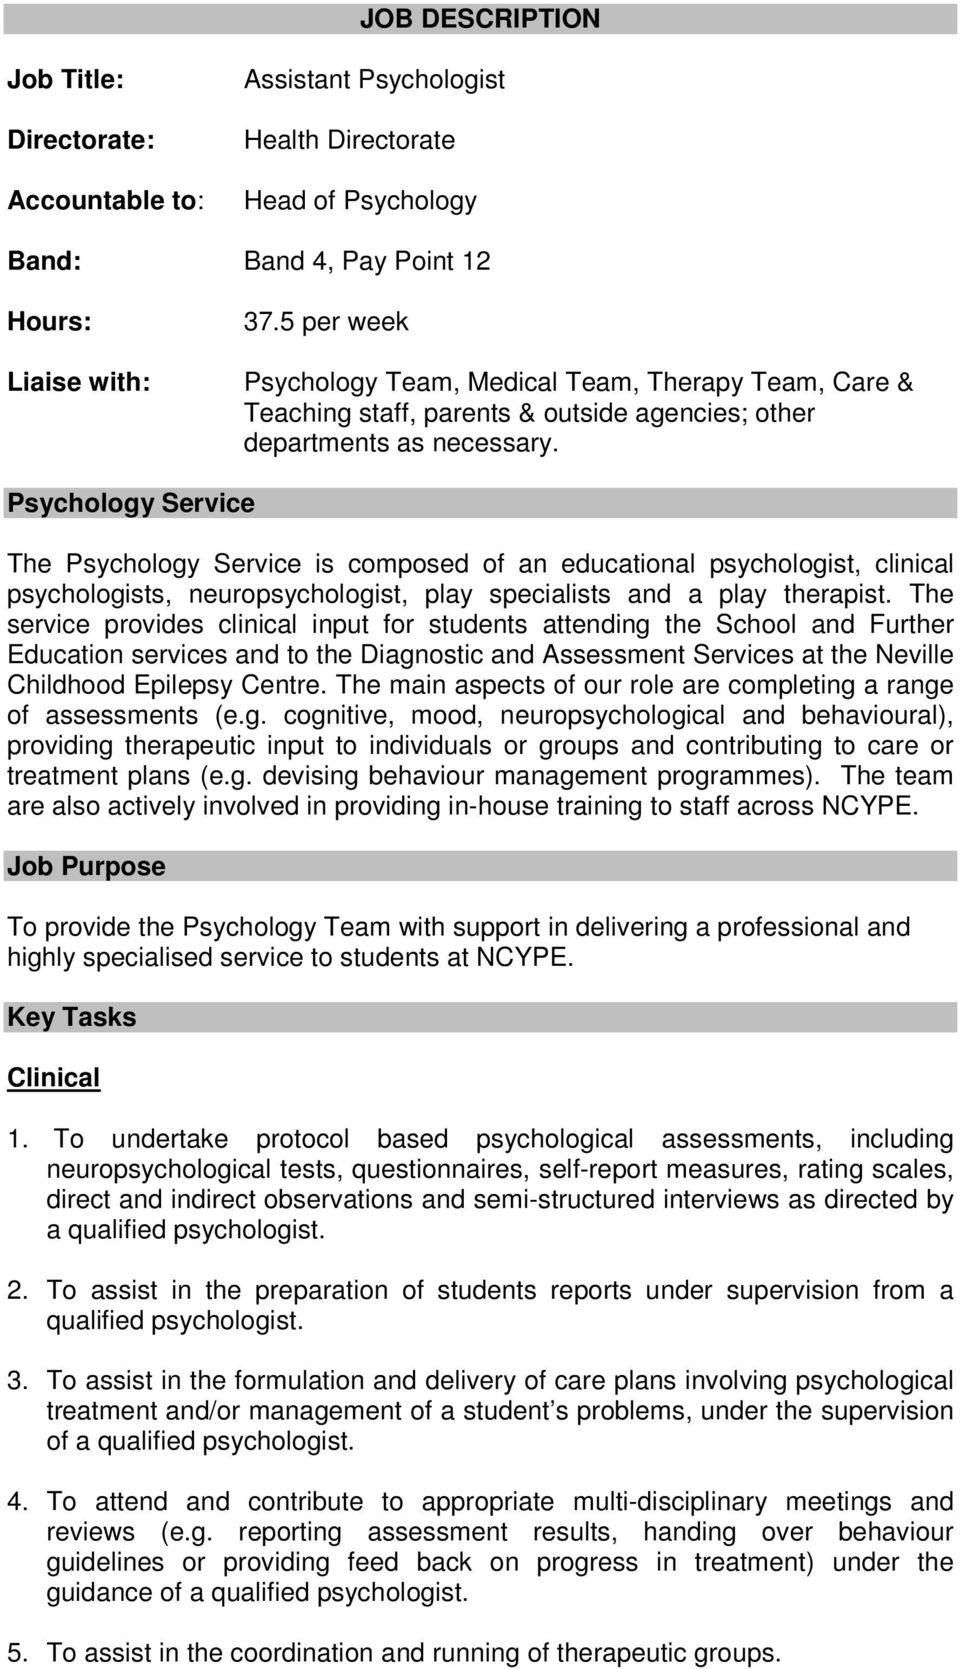 Psychology Service The Psychology Service is composed of an educational psychologist, clinical psychologists, neuropsychologist, play specialists and a play therapist.